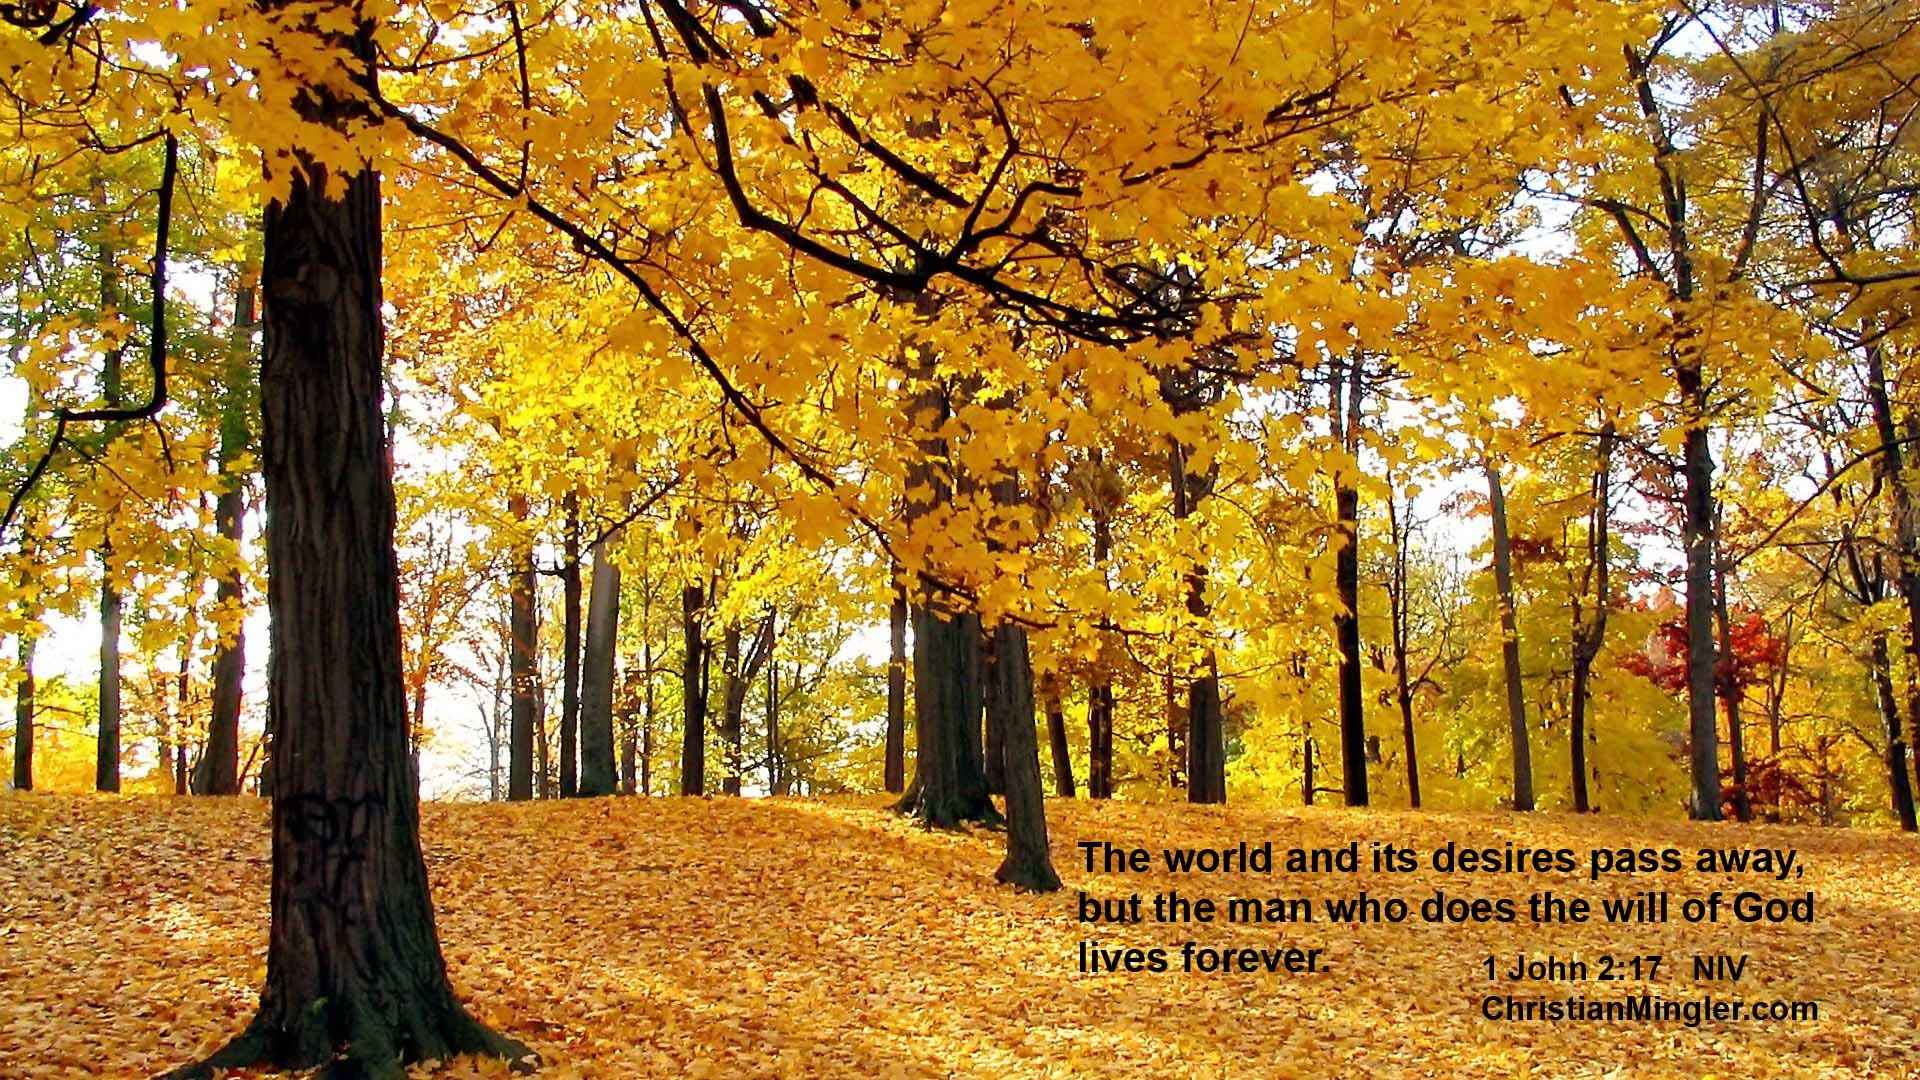 Autumn Scriptures Verses Wallpaper 39 images 1920x1080